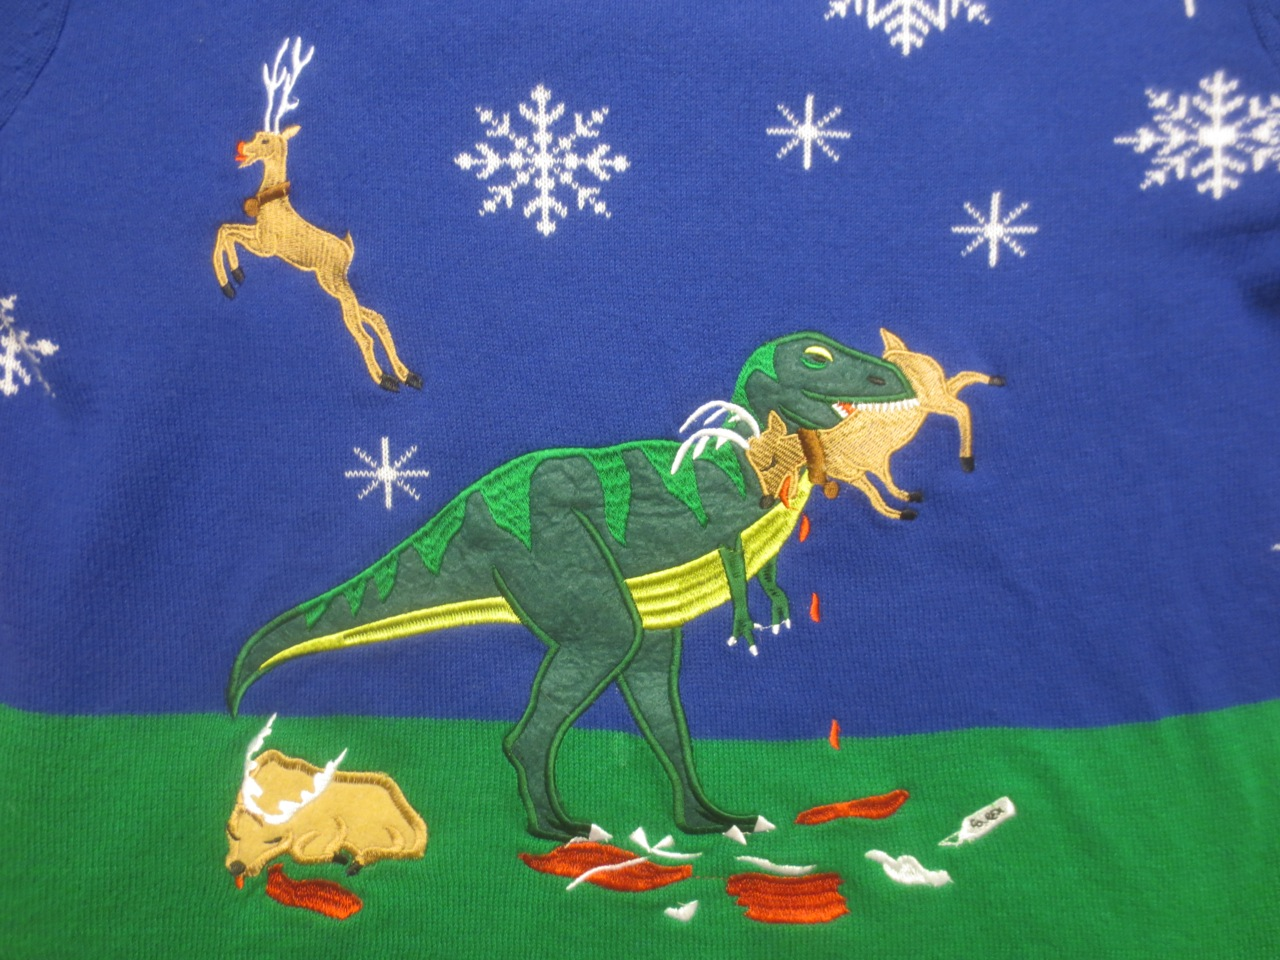 T-rex christmas sweater detail